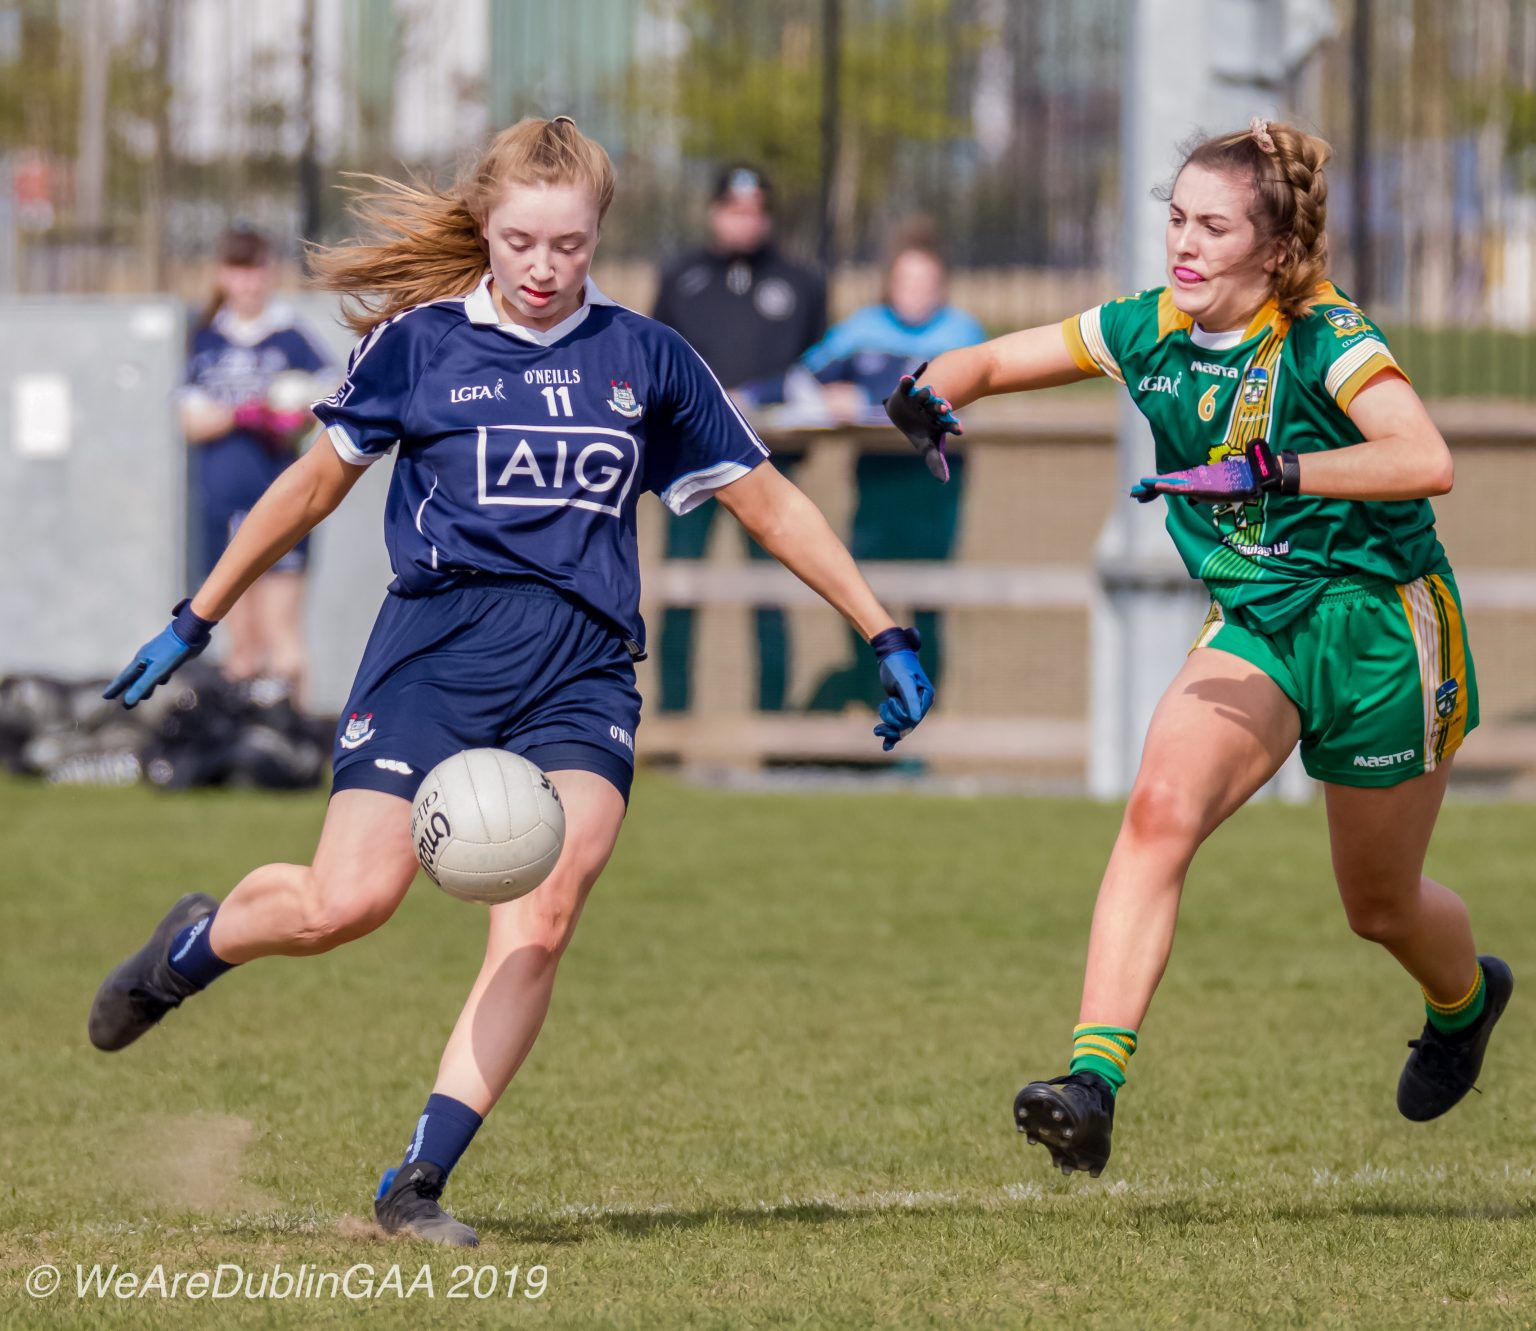 Dublin Ladies Footballer in a Navy Jersey and navy shorts kicks the ball at goal, Dublin have qualified for the Lidl NFL Semi Finals